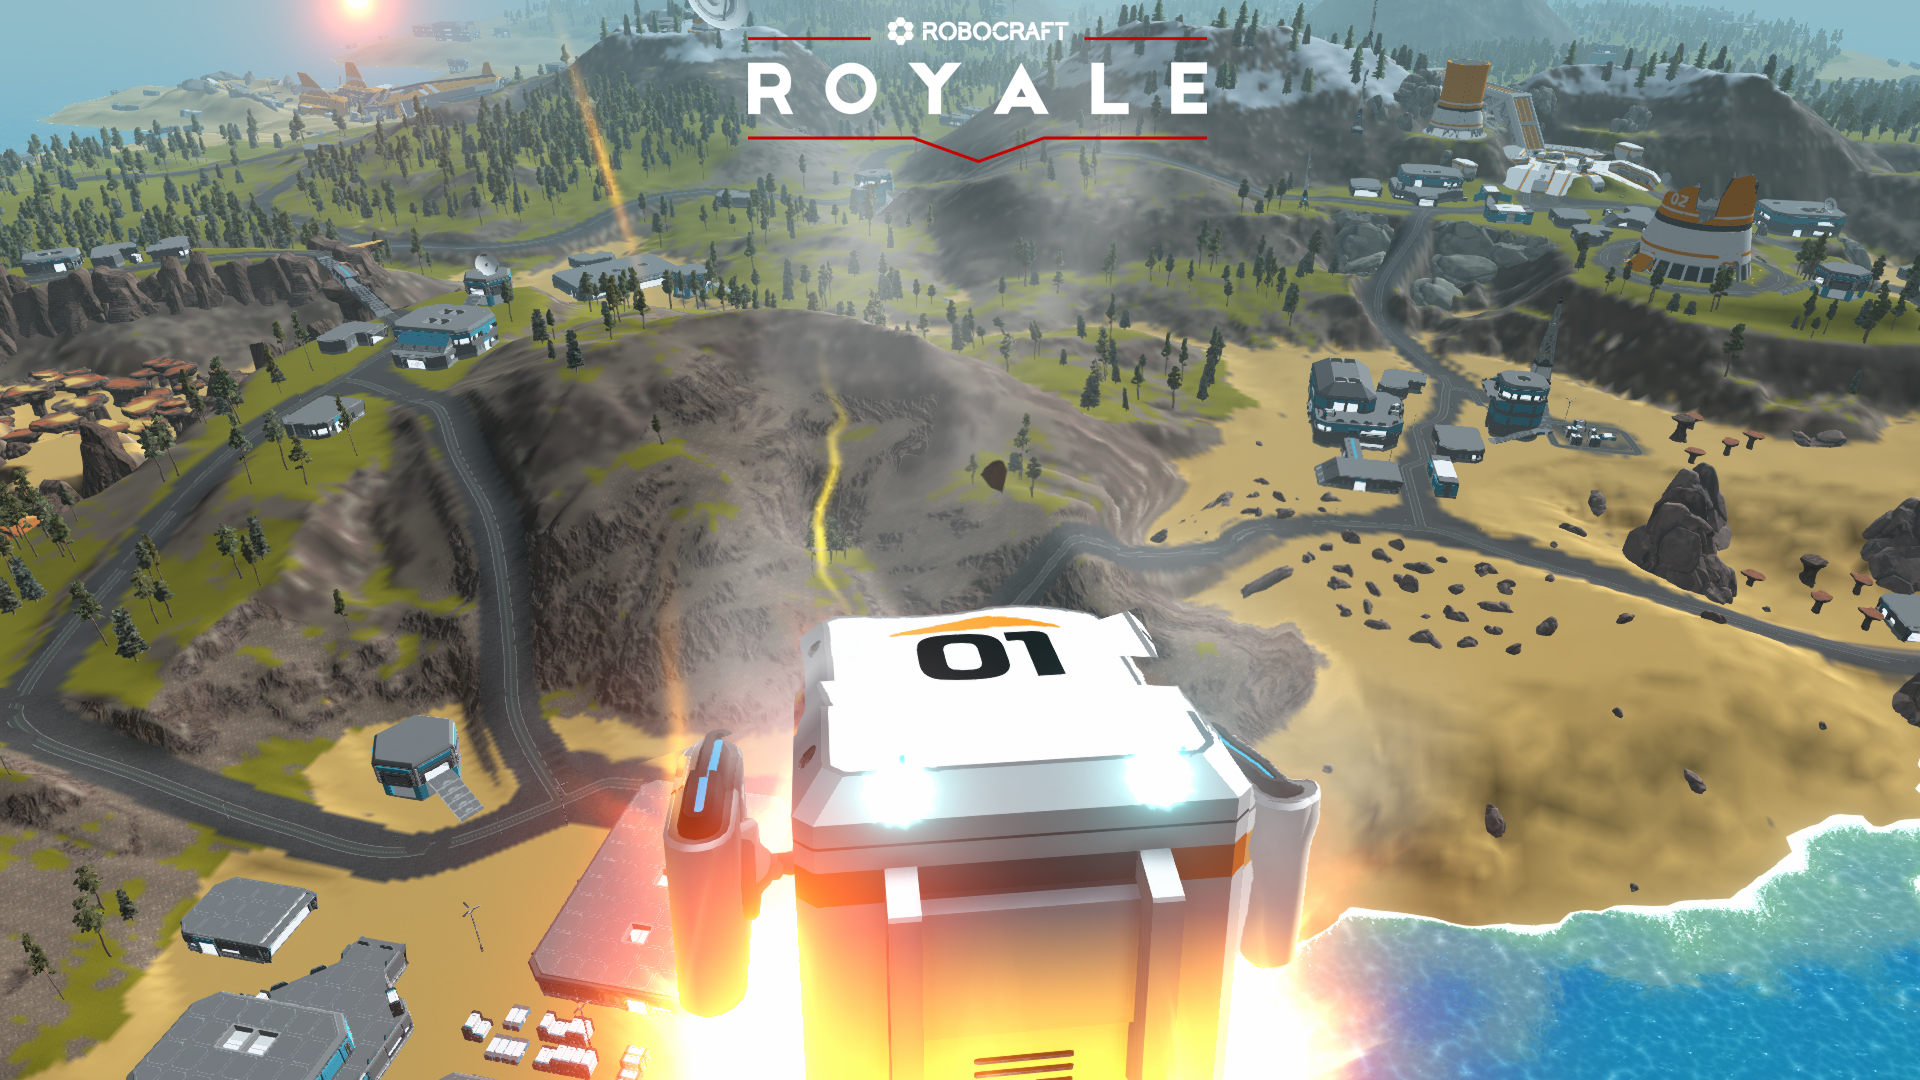 What's On Steam - Robocraft Royale